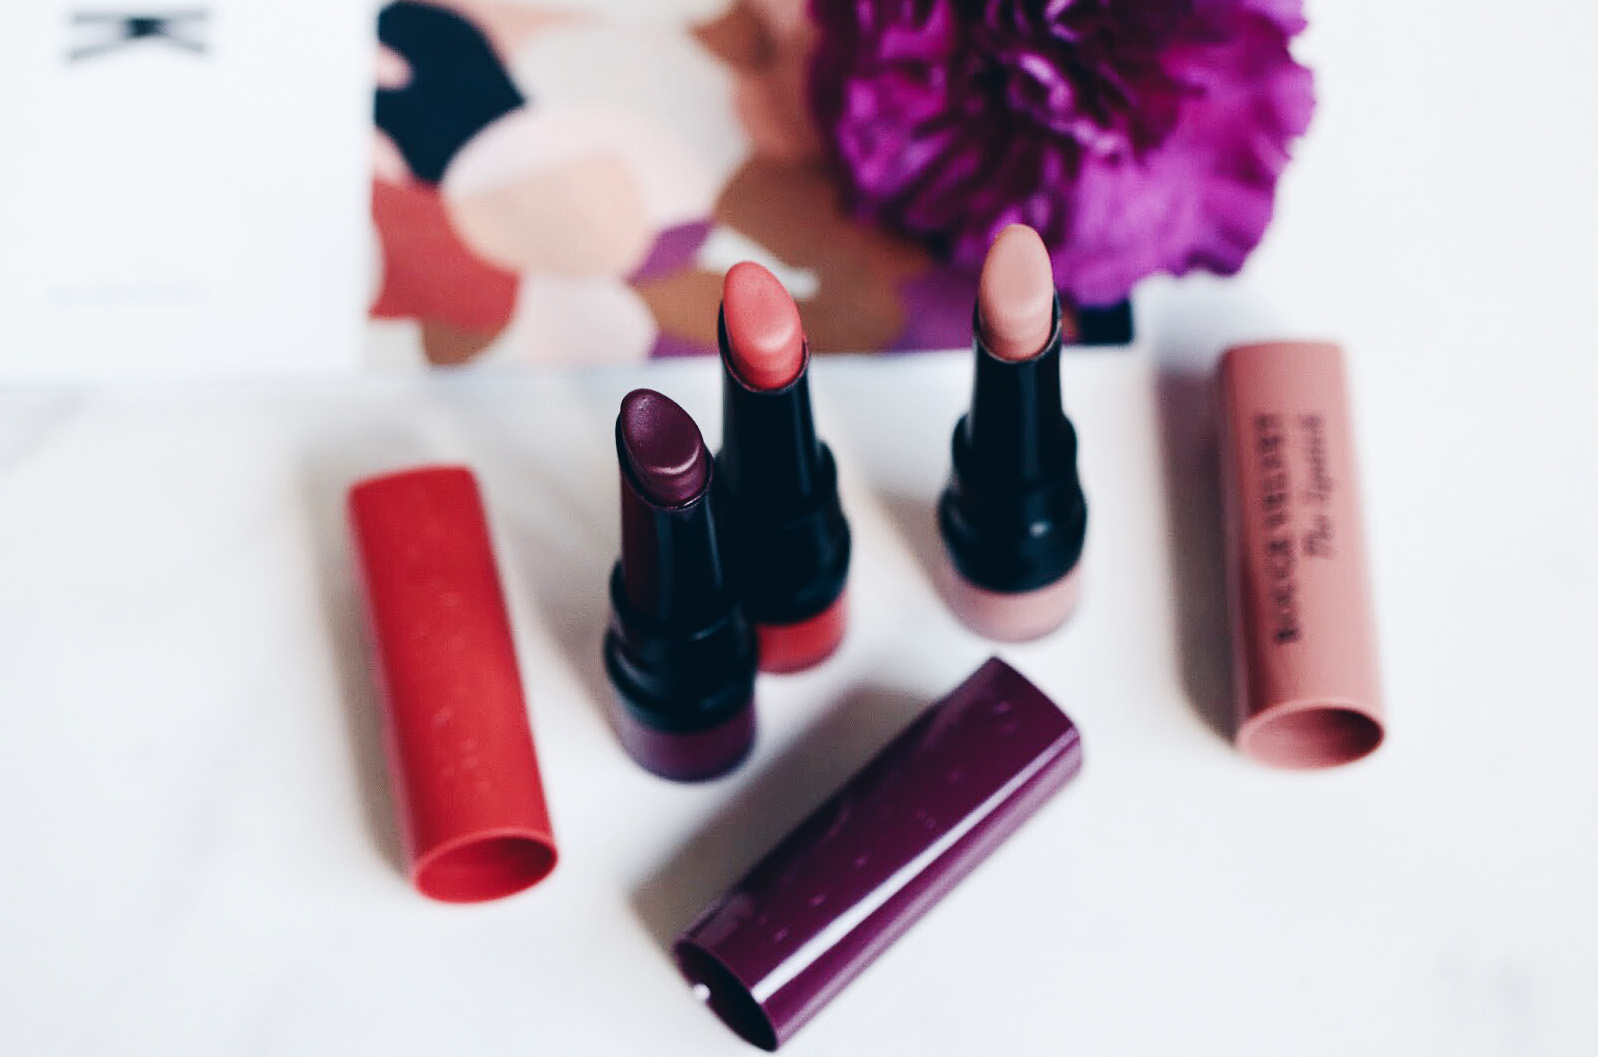 bourjois rouge velvet the lipstick avis test swatches